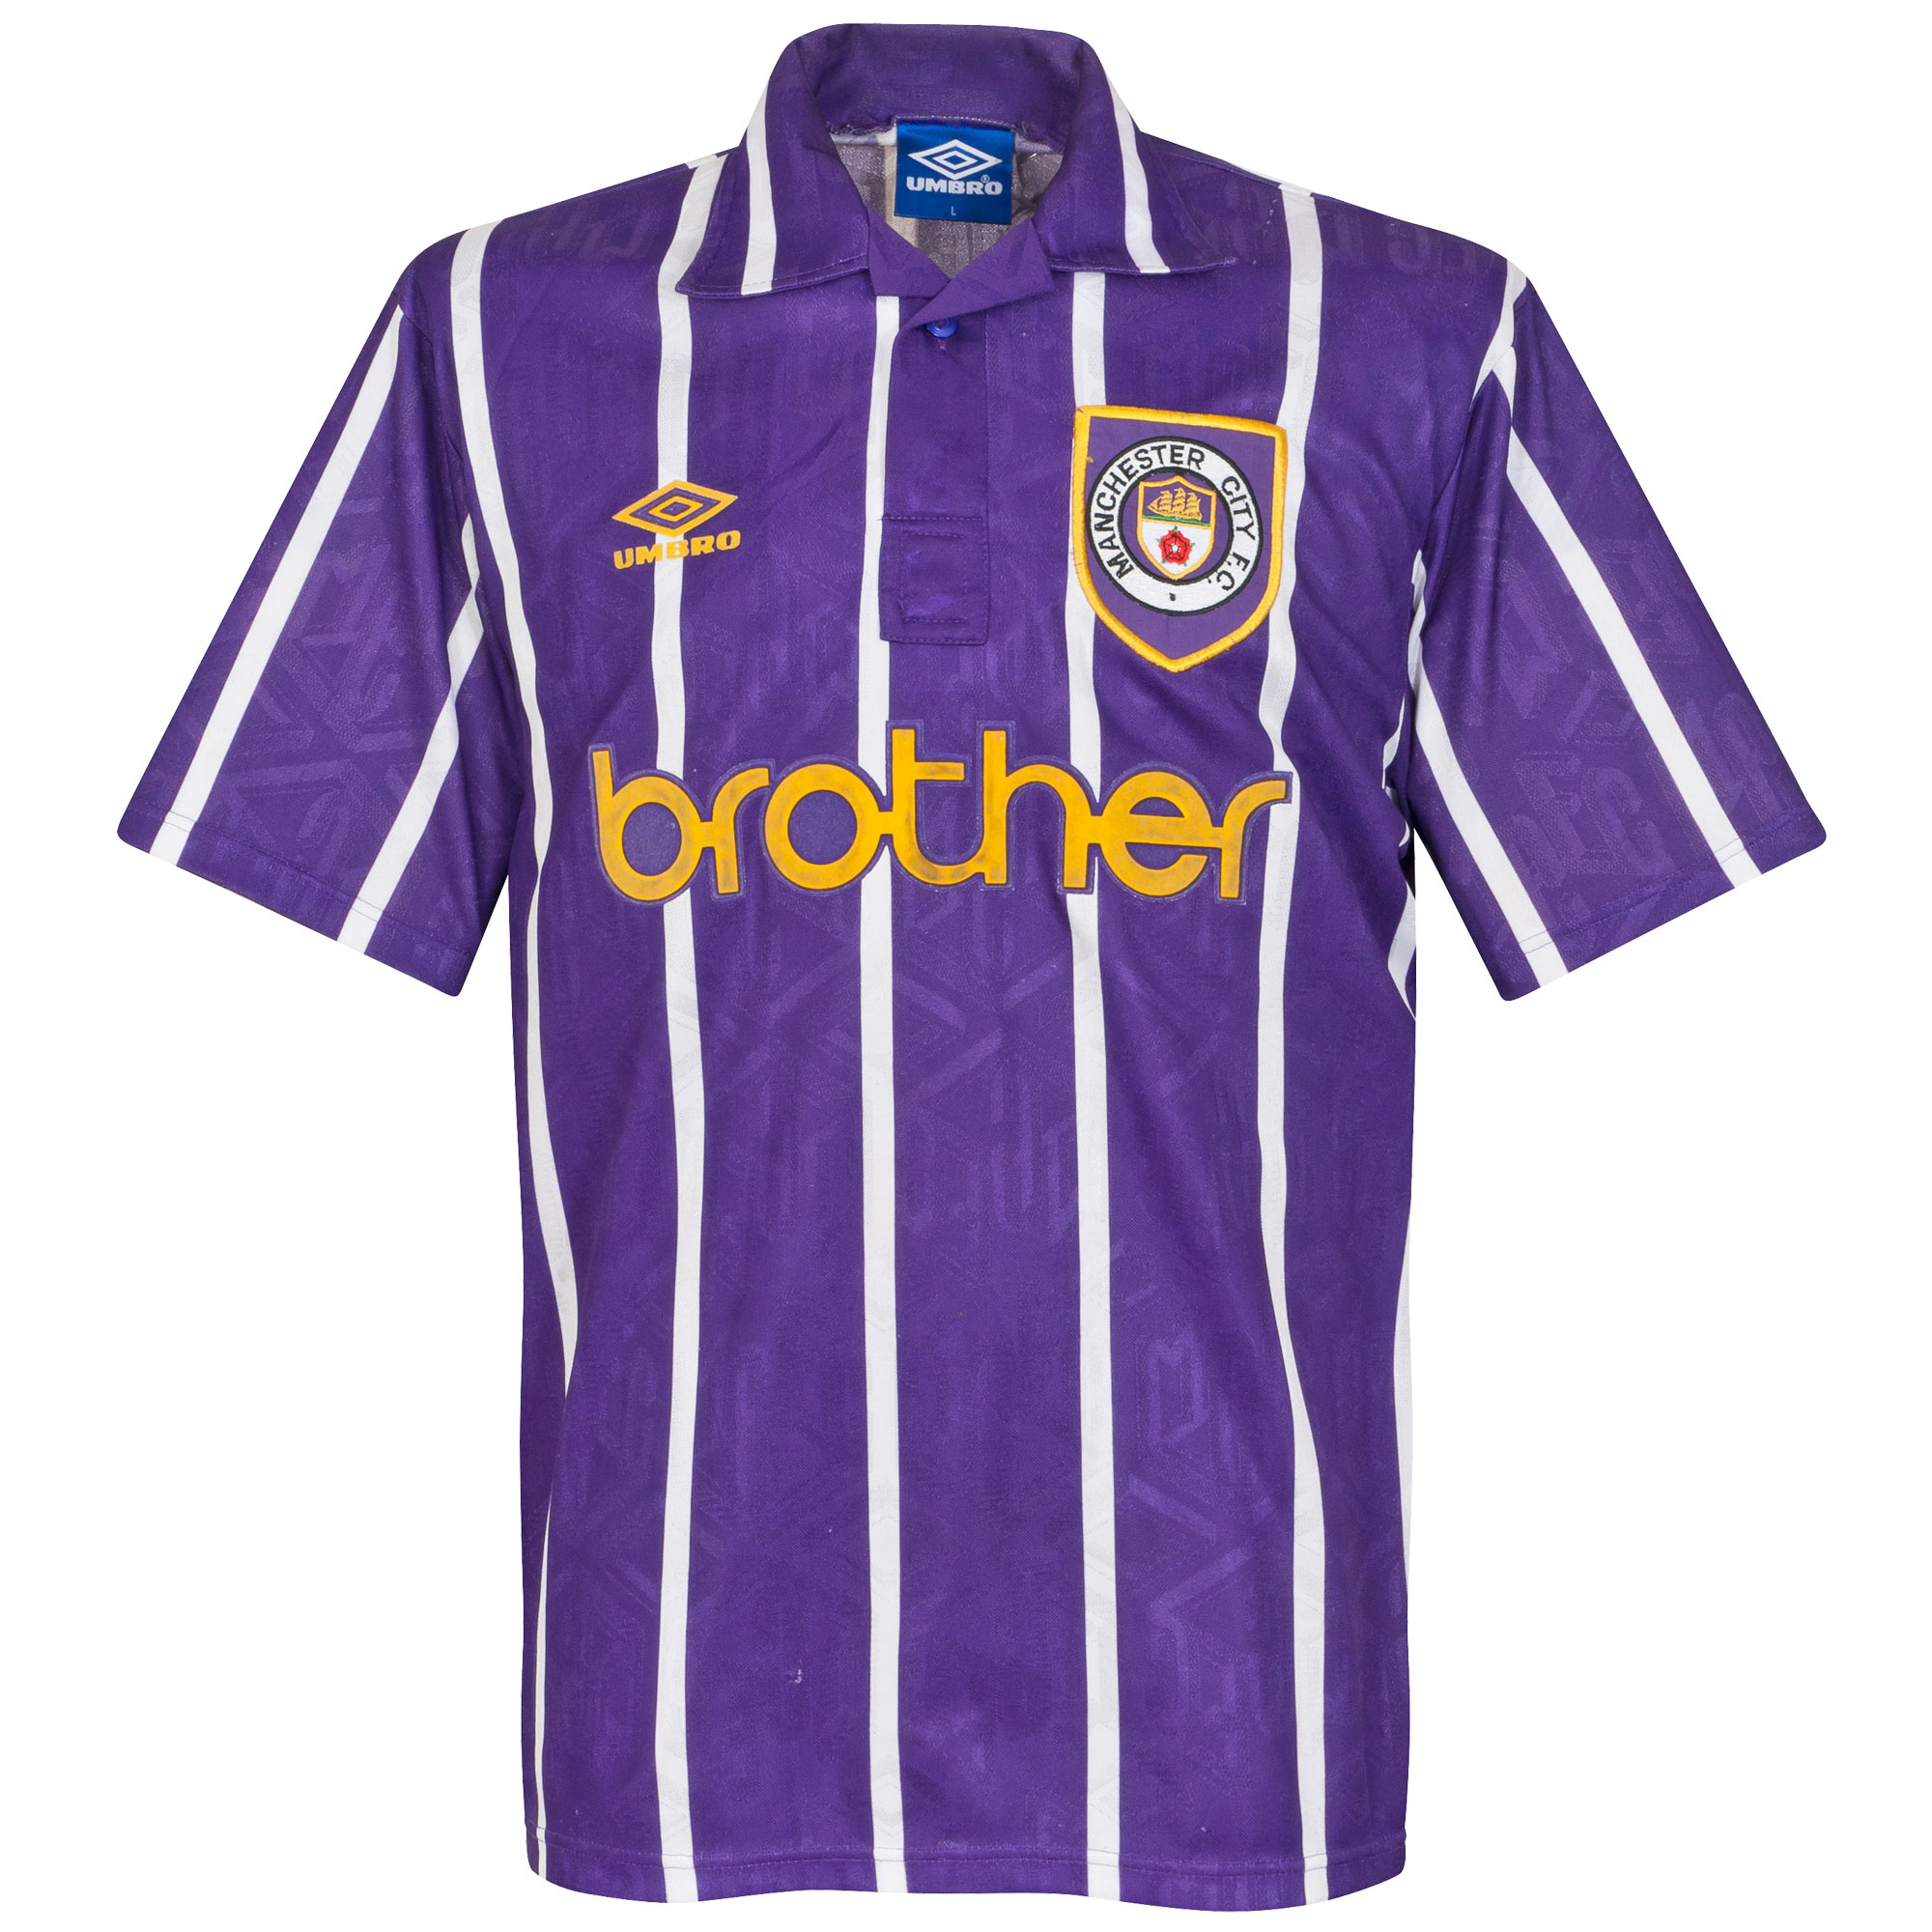 Umbro Manchester City 1993-1994 Away Shirt - USED Condition (Great) - Size